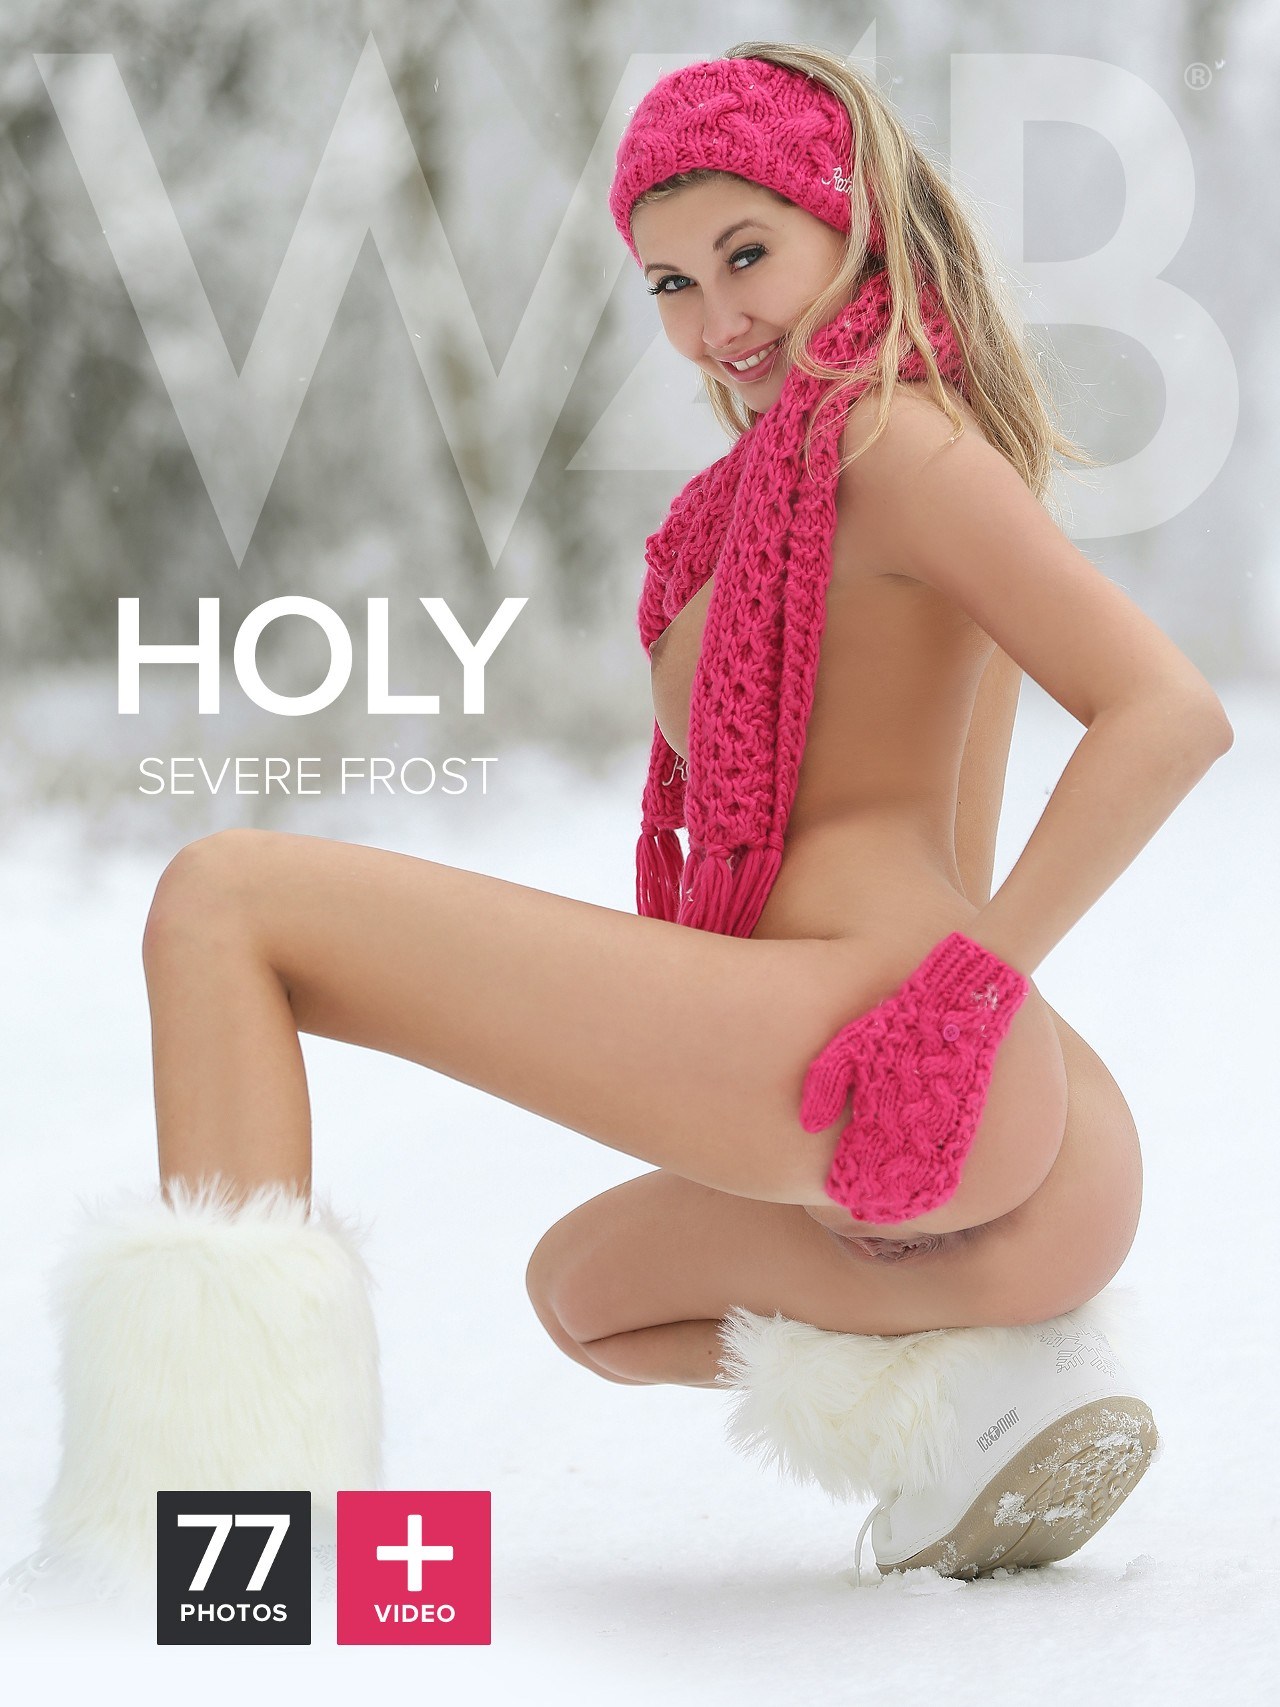 Holy: Severe frost